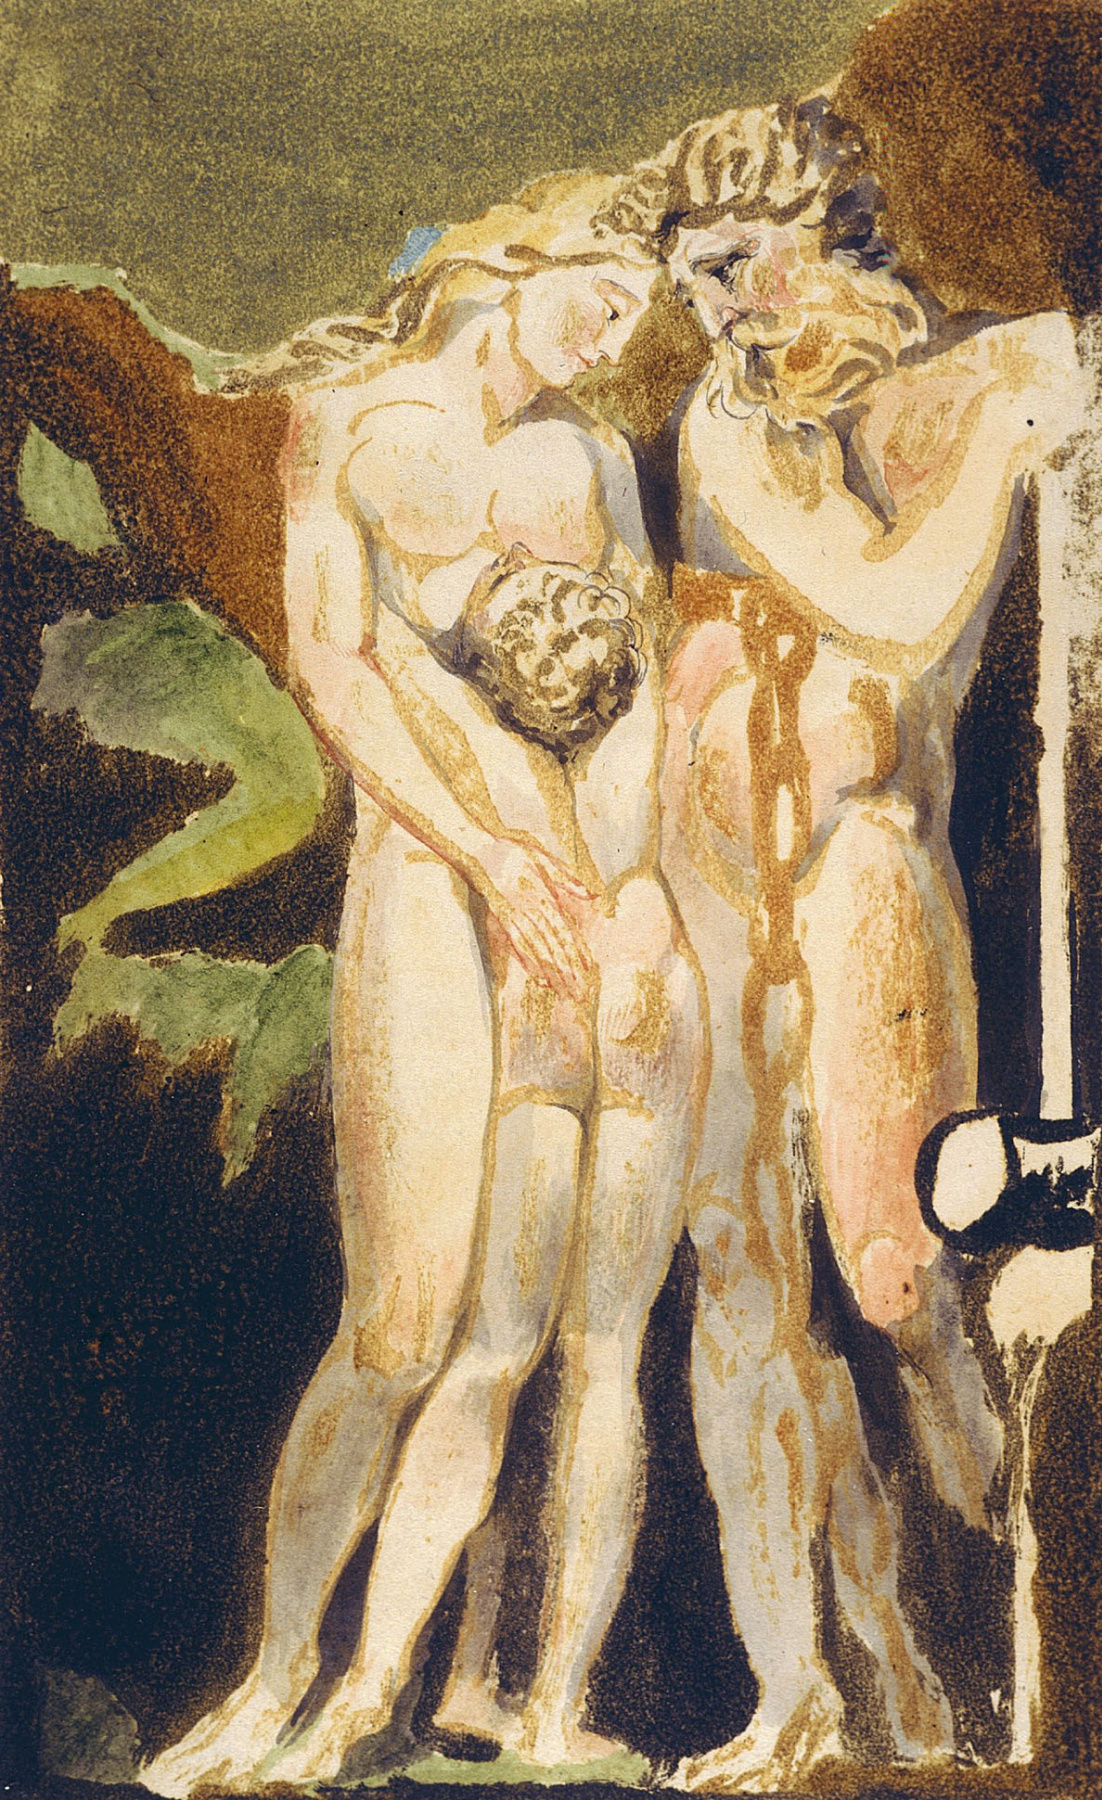 William Blake. The first book Urizen. Los in chains of jealousy, Enitharmon and Orc